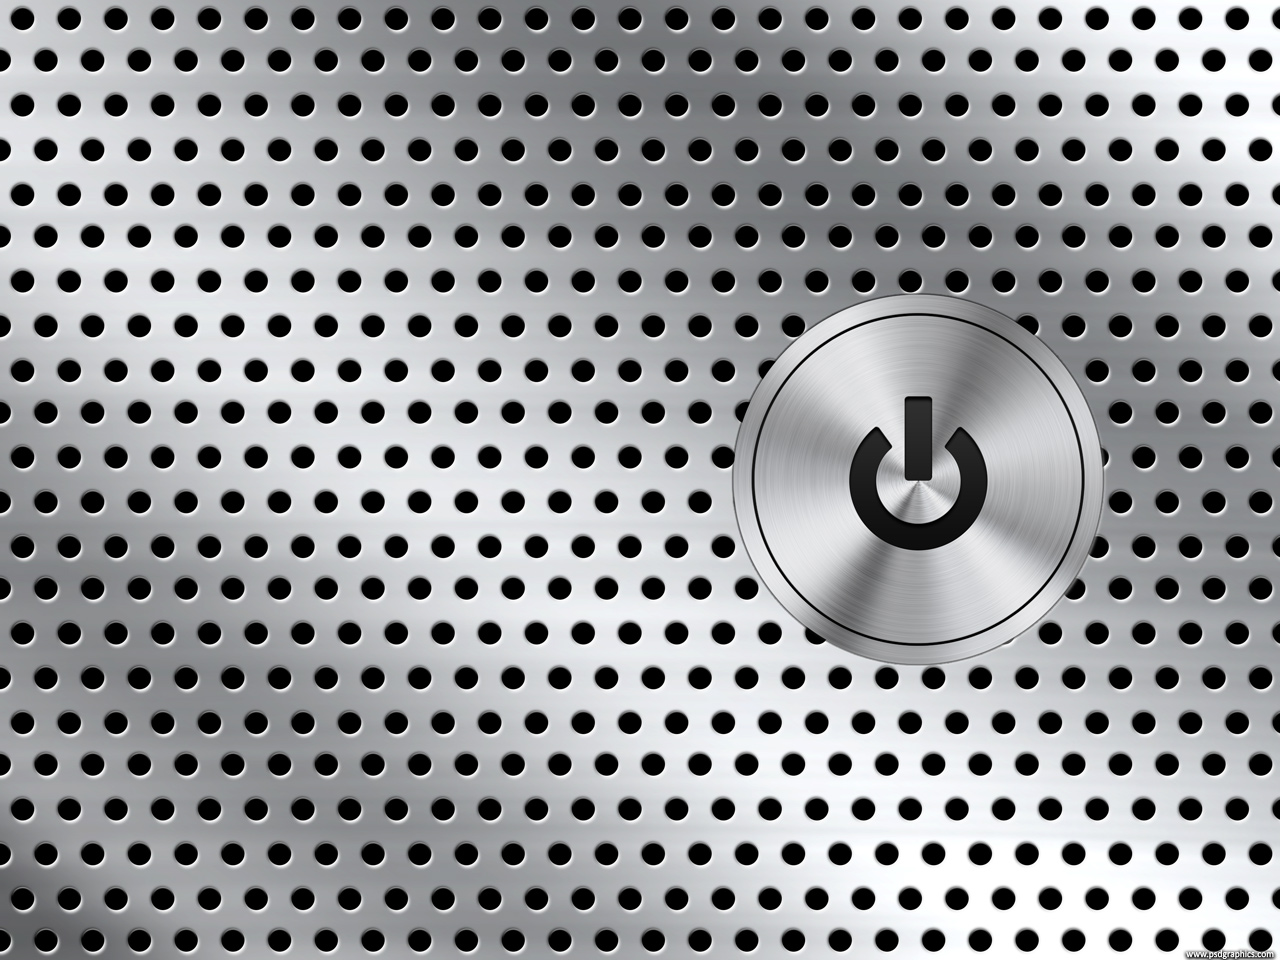 Medium size preview 1280x960px computer power button background